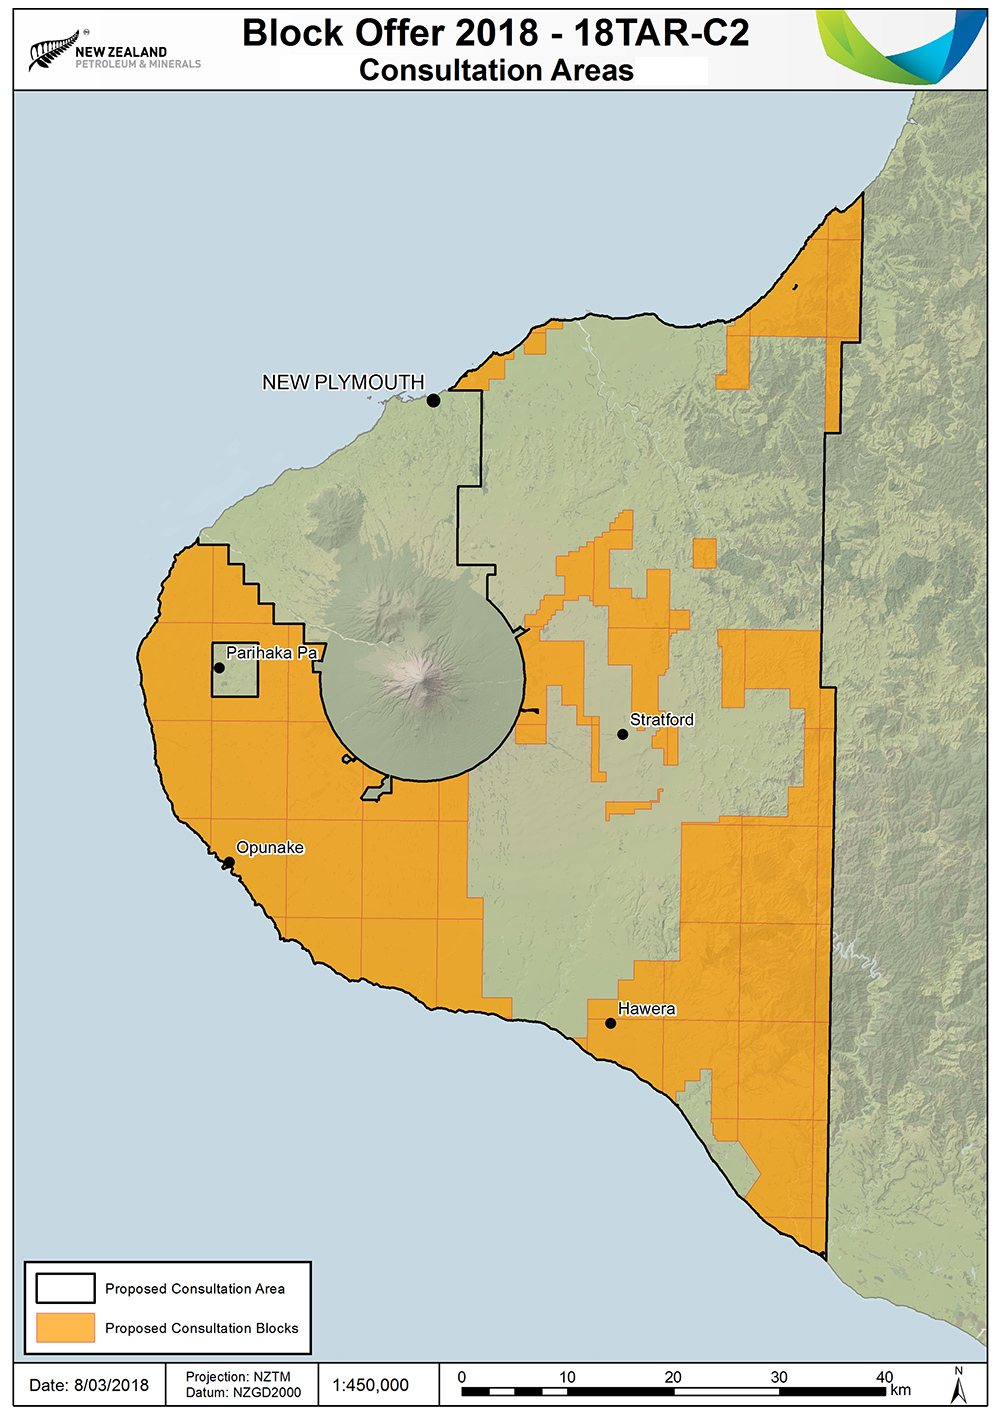 Map of the Taranaki region showing proposed consultation areas for Block Offer 2018.